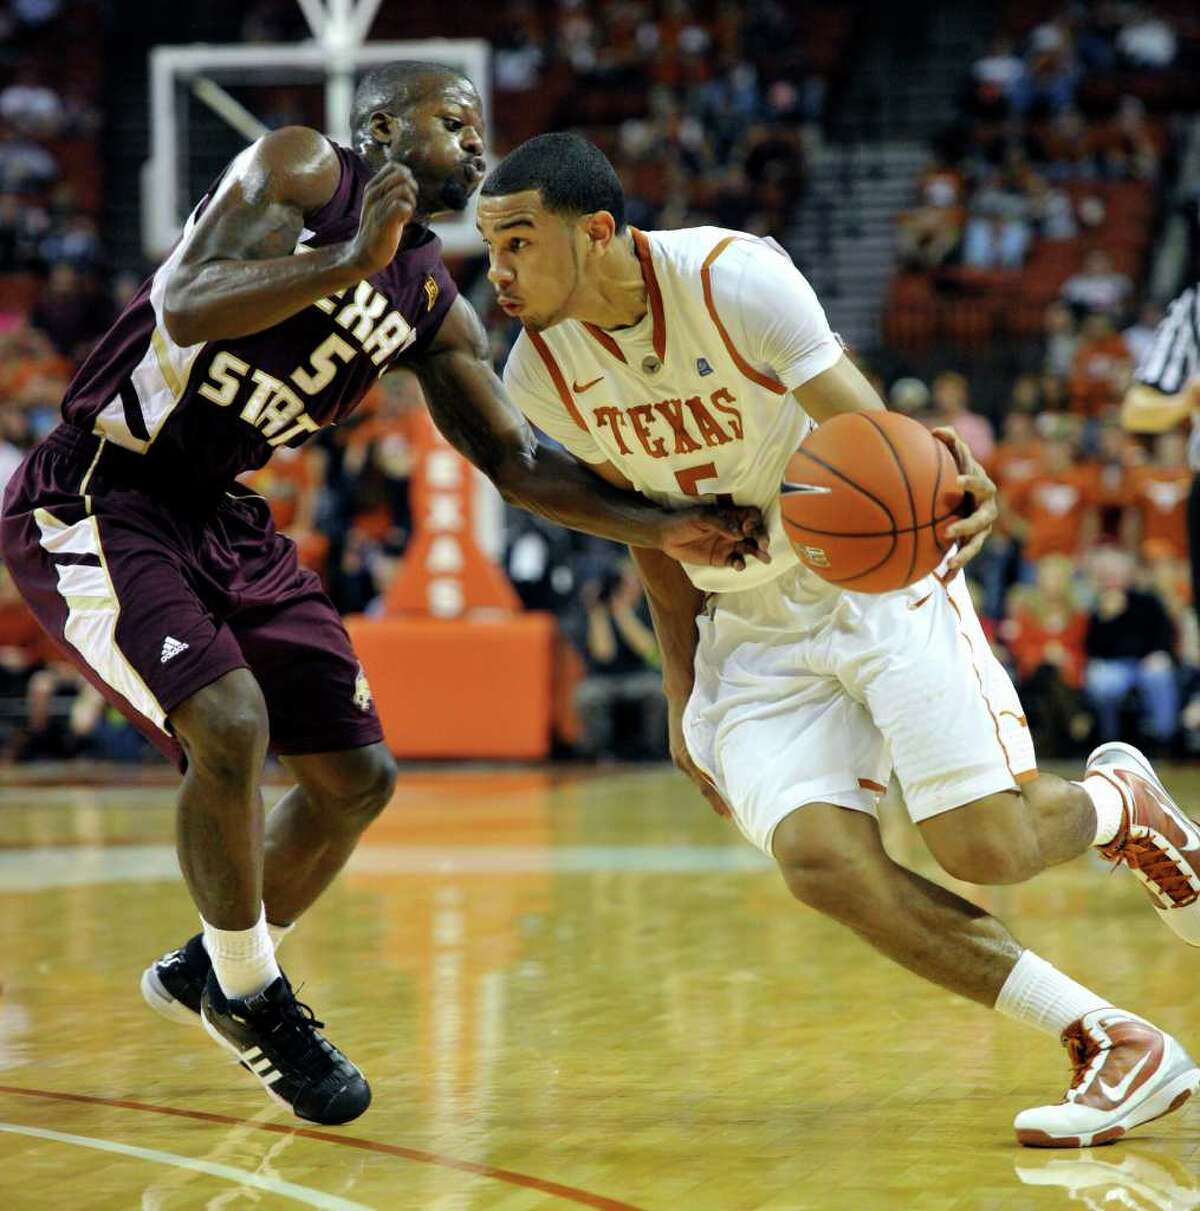 Texas guard Cory Joseph, right, drives past Texas State forward John Bowman, left, during the first half in an NCAA college basketball game, Saturday, Dec. 11, 2010, in Austin, Texas. (AP Photo/Michael Thomas)